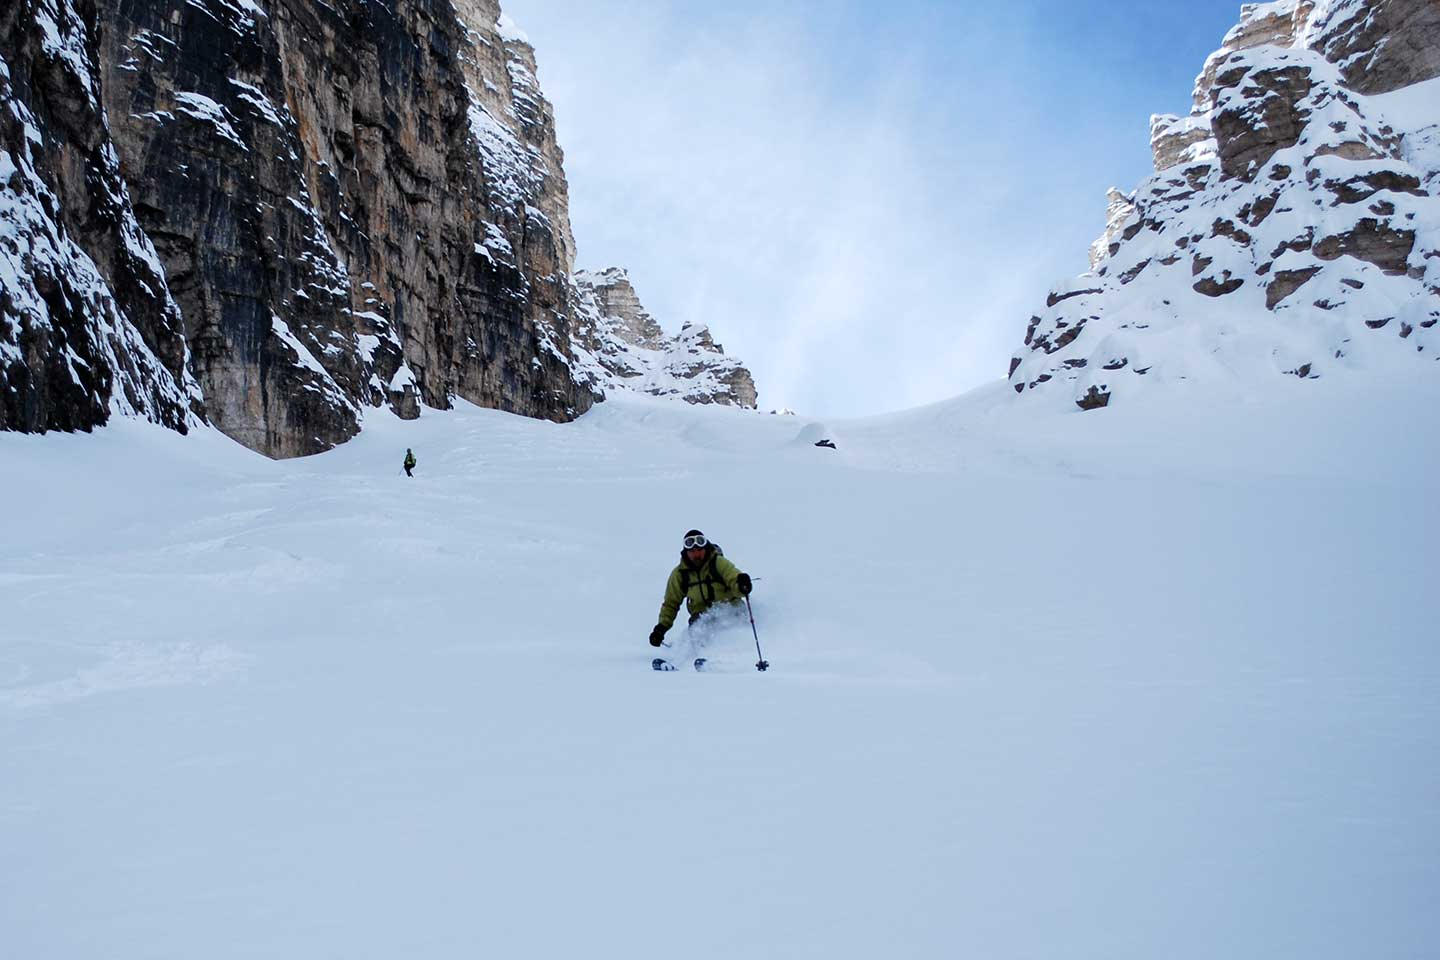 Off-piste Skiing Vallon de Raola to Tofane Group